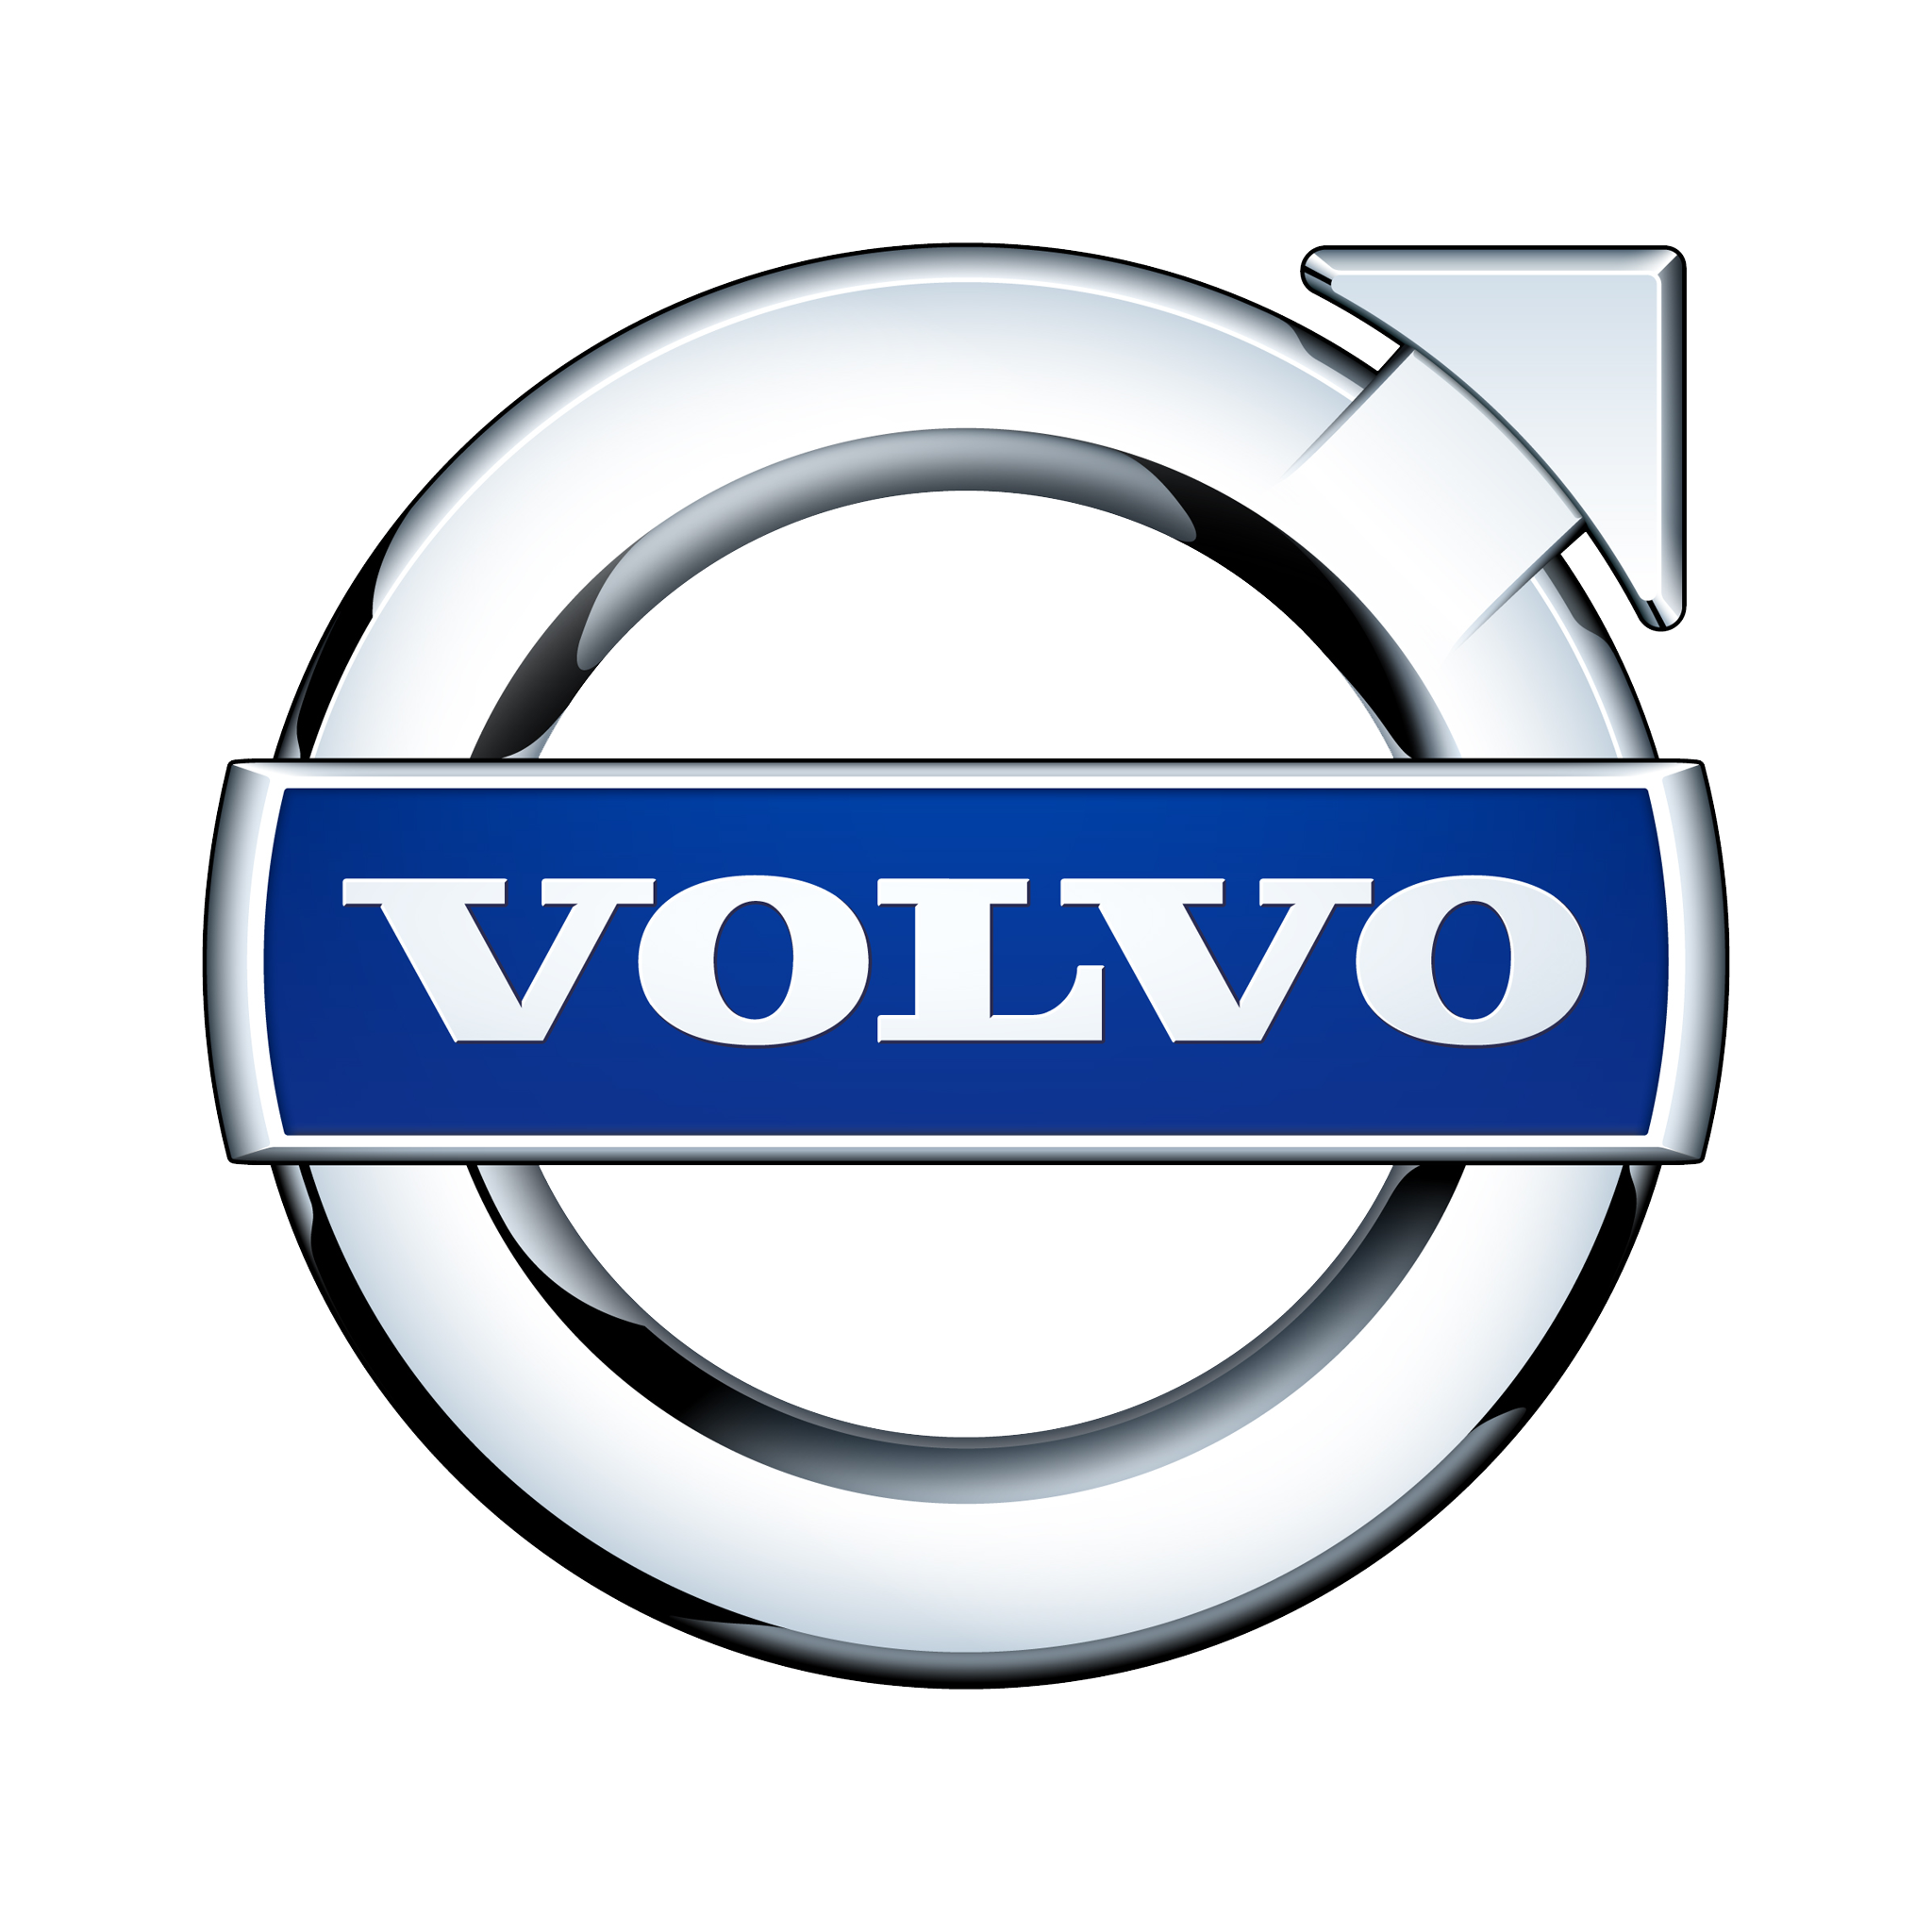 Volvo Logo, HD Png, Meaning, Information Volvo logo, Car